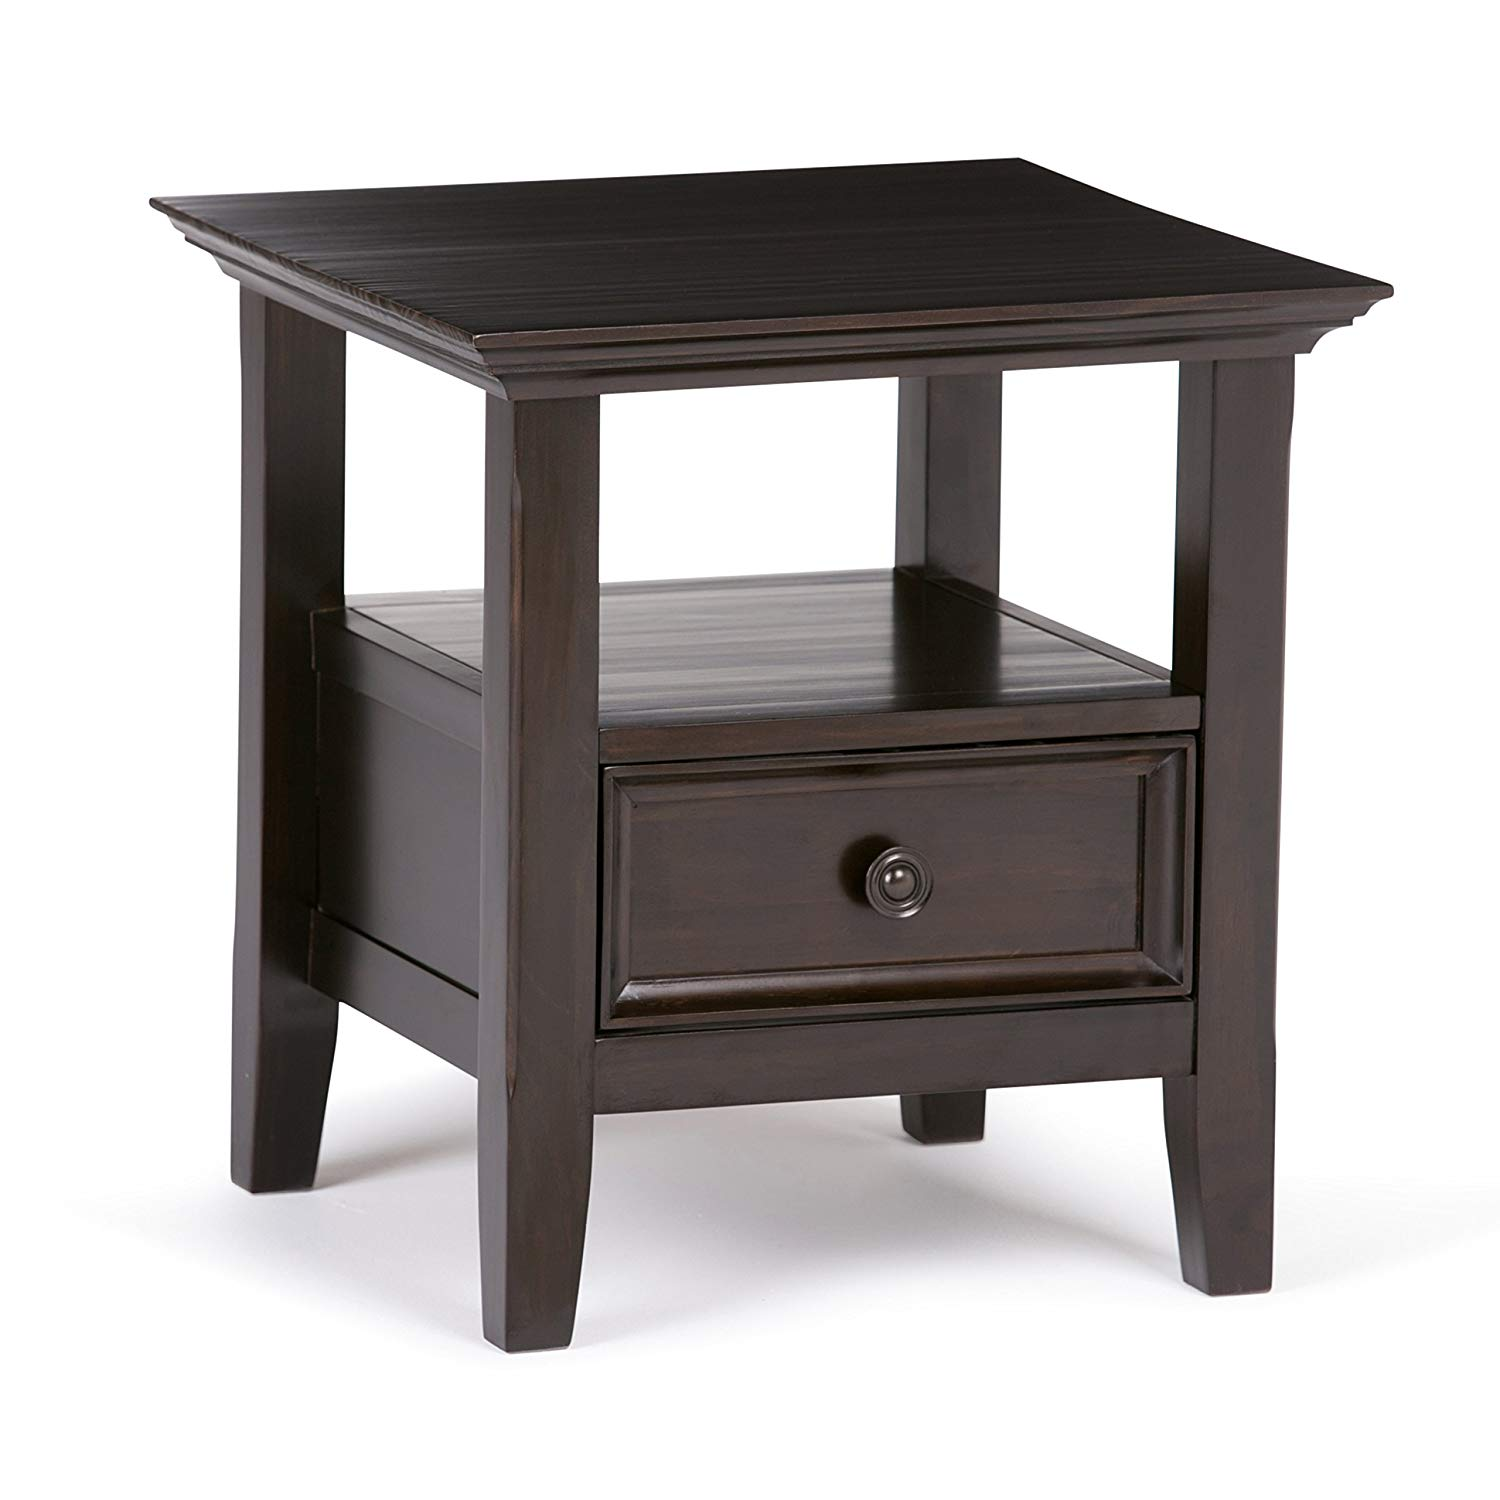 simpli home axcamh amherst solid wood inch wide dark brown end table square traditional kitchen dining cherry oak furniture log bench sauder harbor homemade pallet coral accent